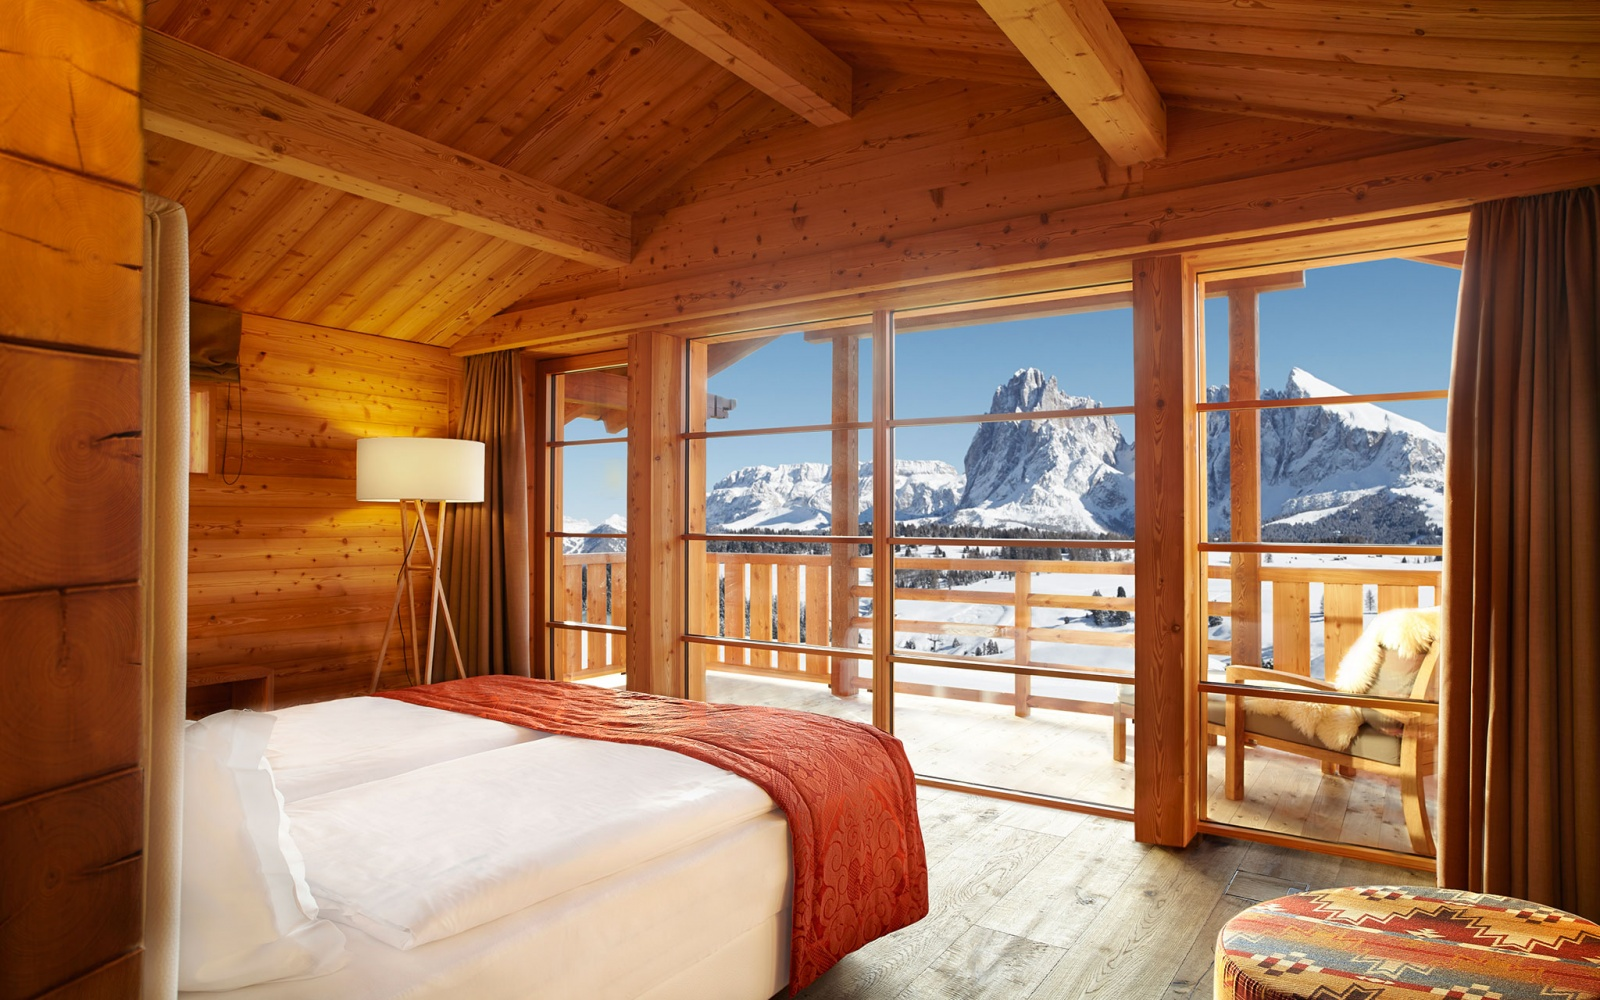 Europes Best Winter Getaways Travel Leisure - 12 best warm weather escapes for the holidays